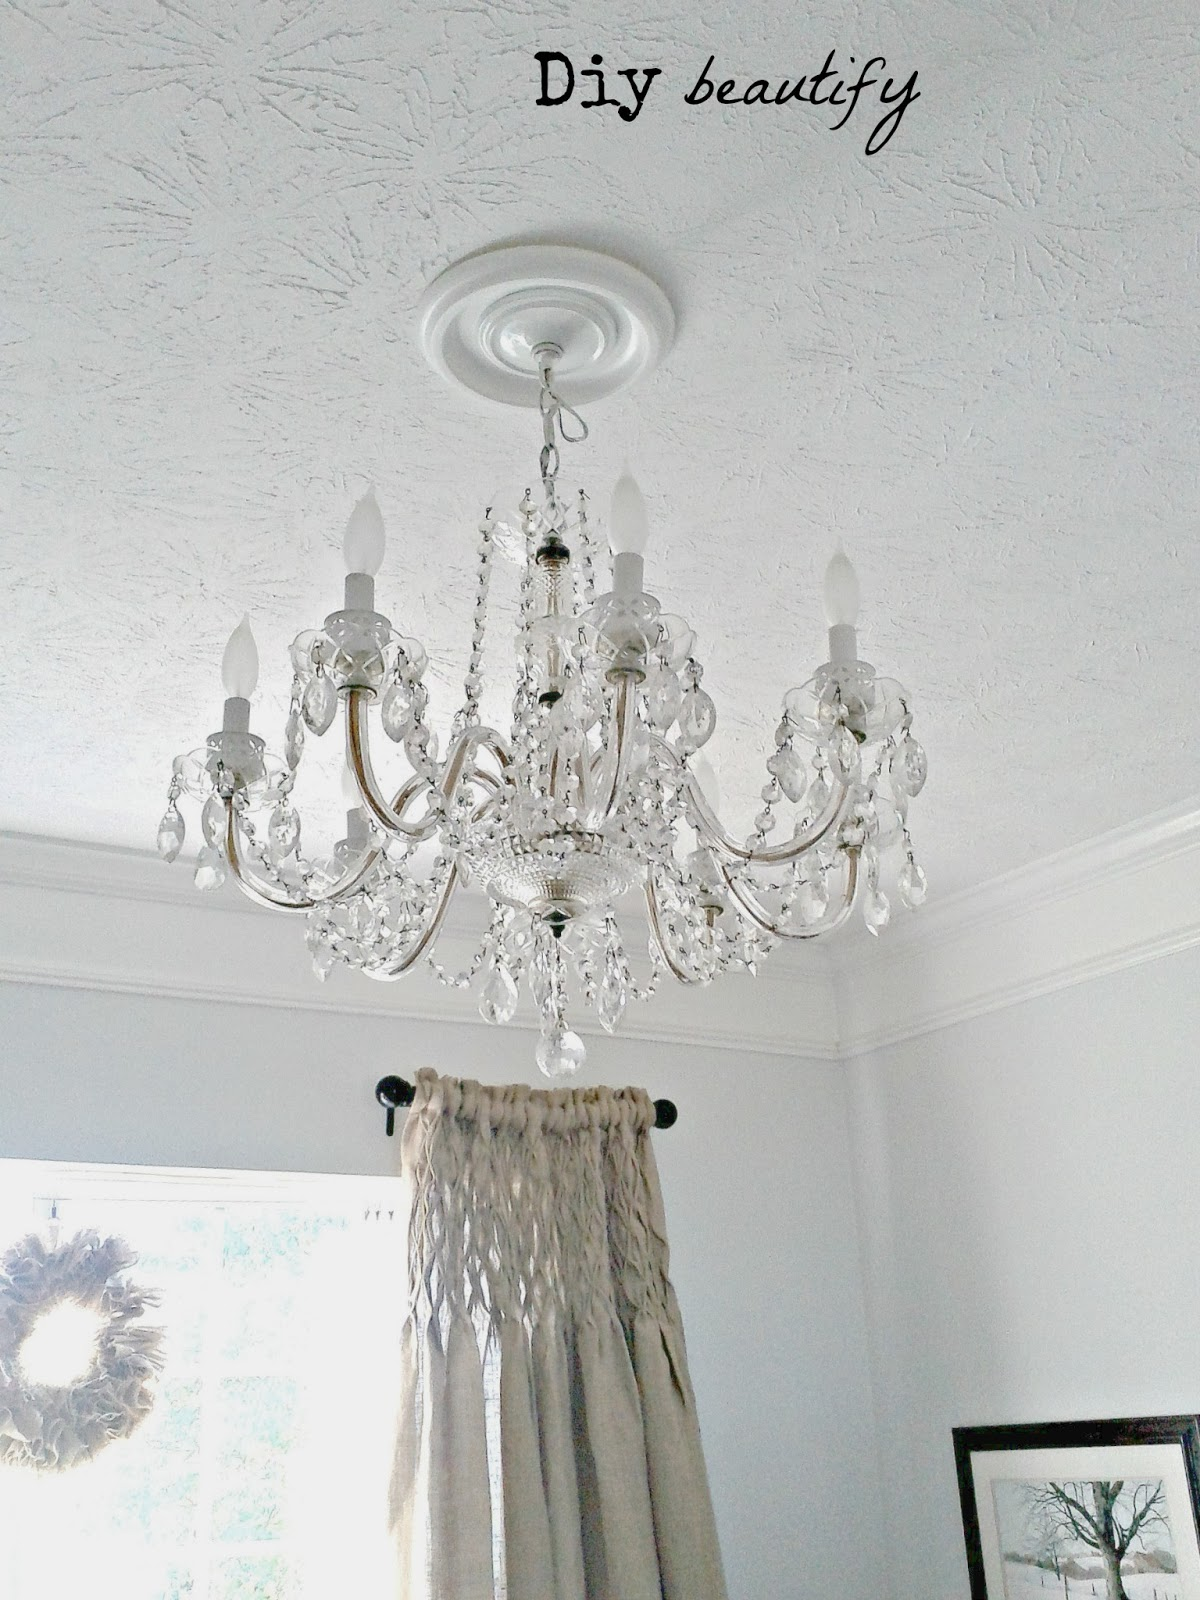 cover your chandelier cords with burlap diy beautify. Black Bedroom Furniture Sets. Home Design Ideas